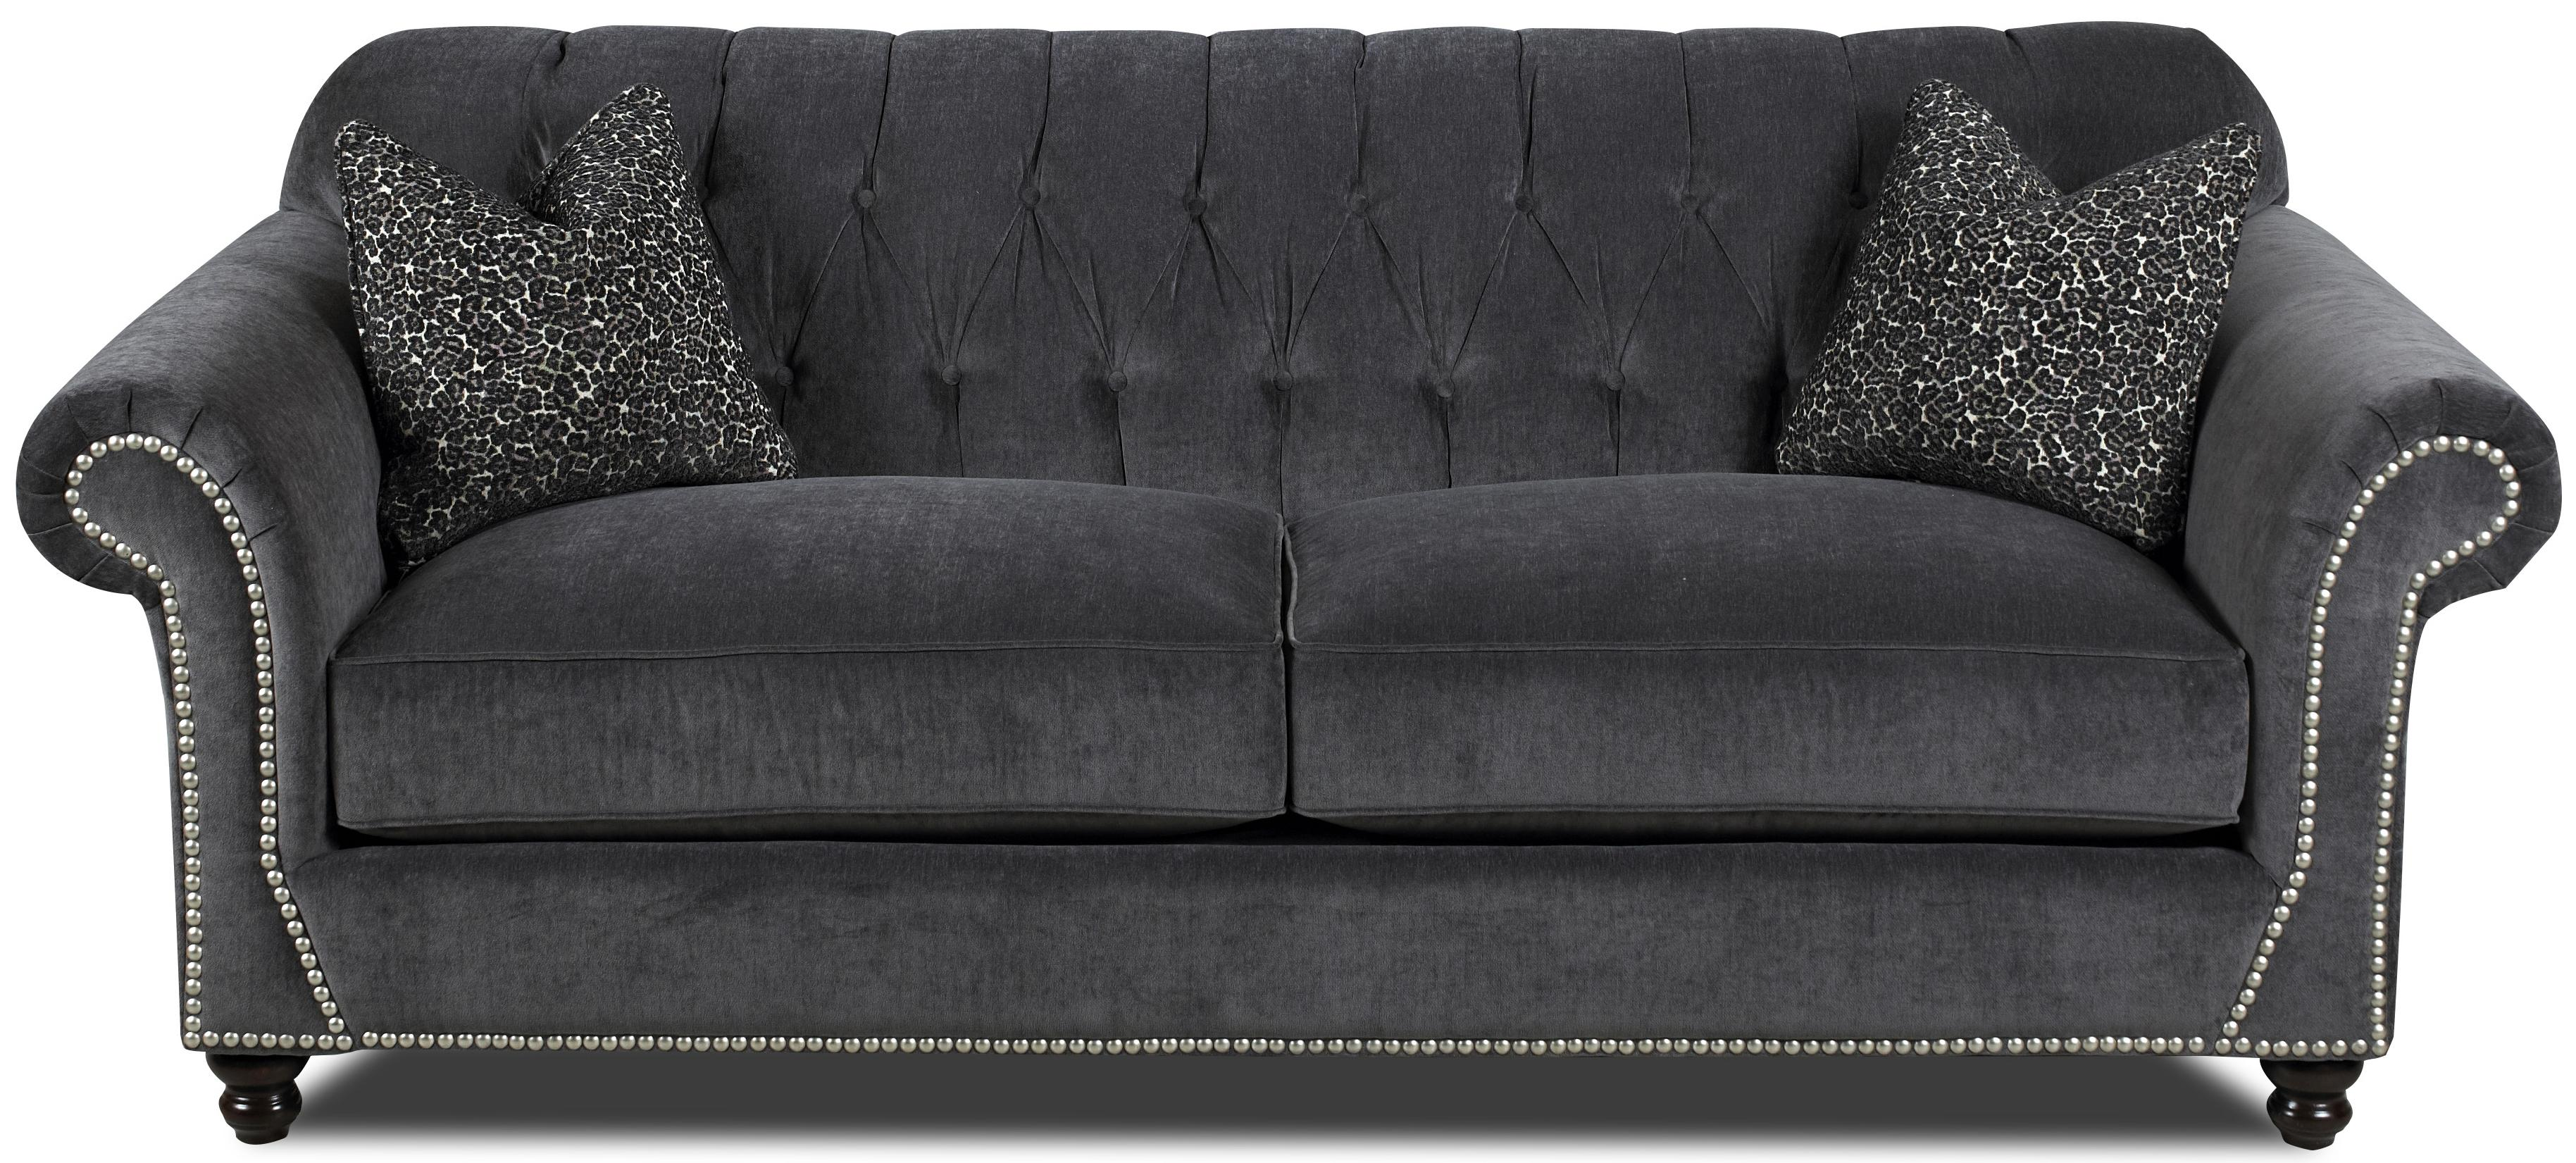 Traditional Sofa Throw Pillows : Klaussner Flynn Traditional Sofa with Button Tufted Back, Rolled Arms and Throw Pillows - Steger ...